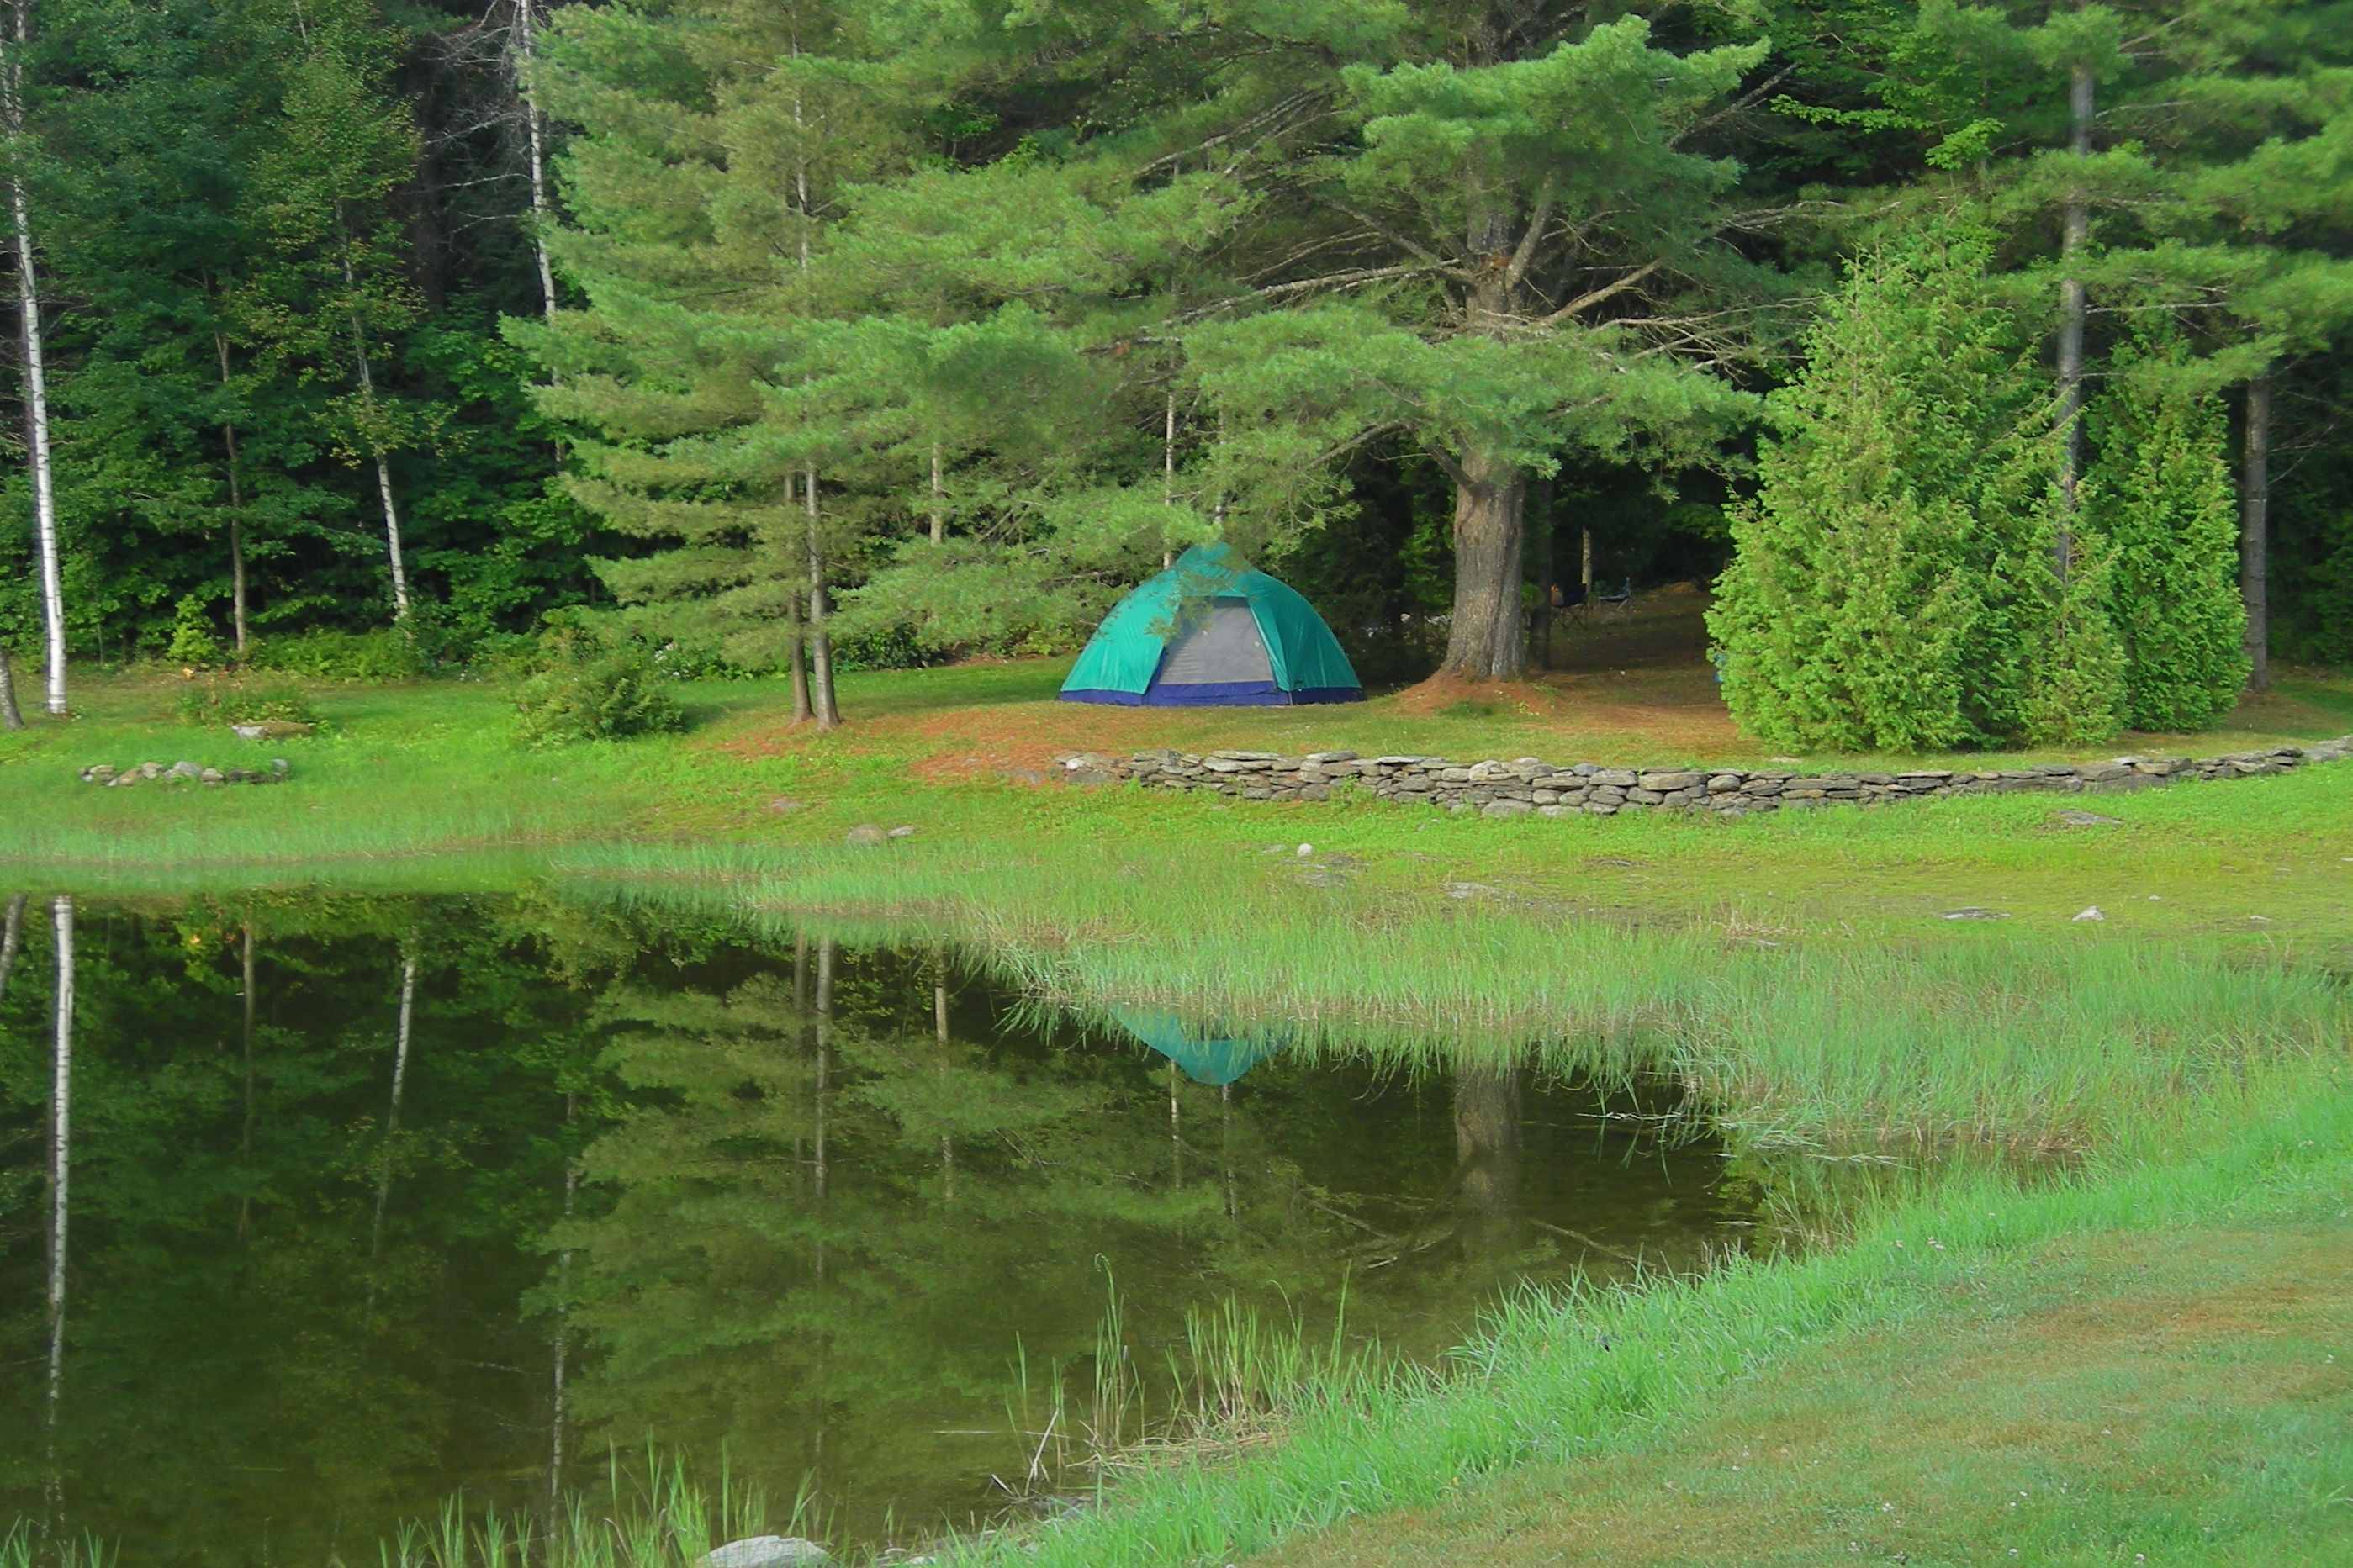 Camping at the Cedarwood Resort, Jay, Vermont, August 2012